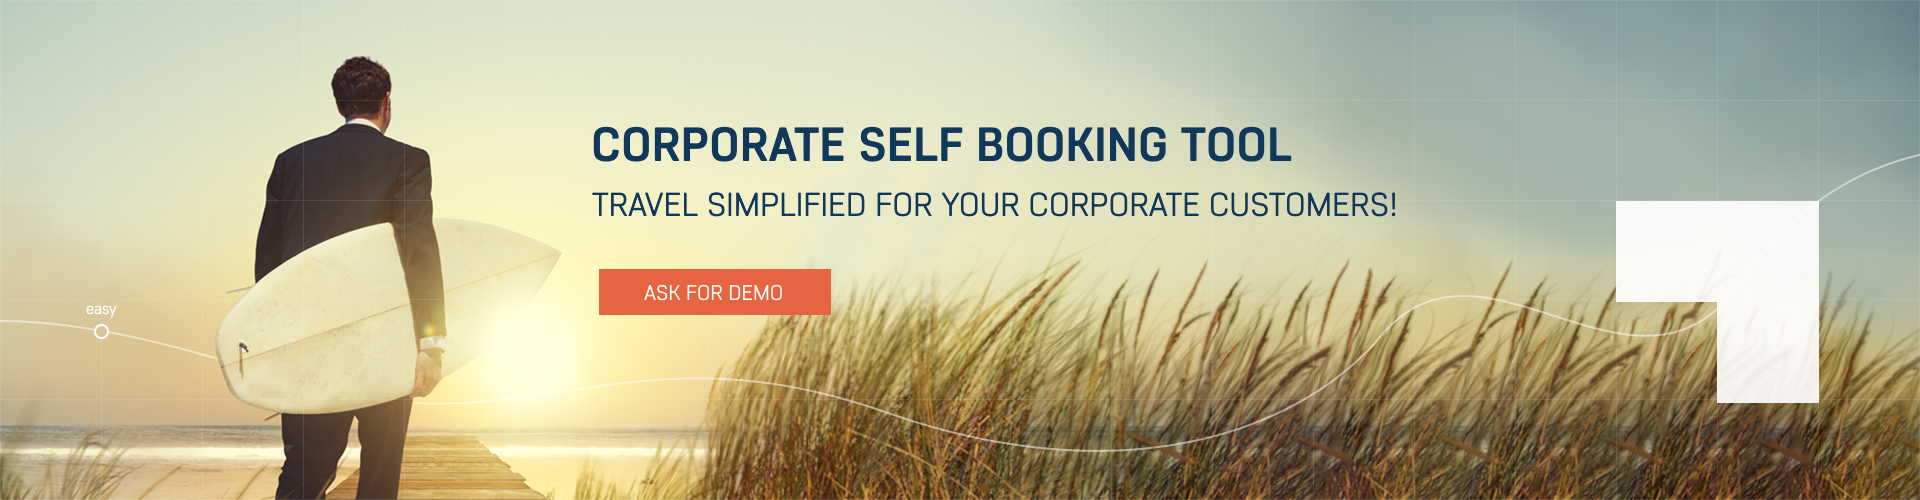 Corporate Self Booking Tool Features